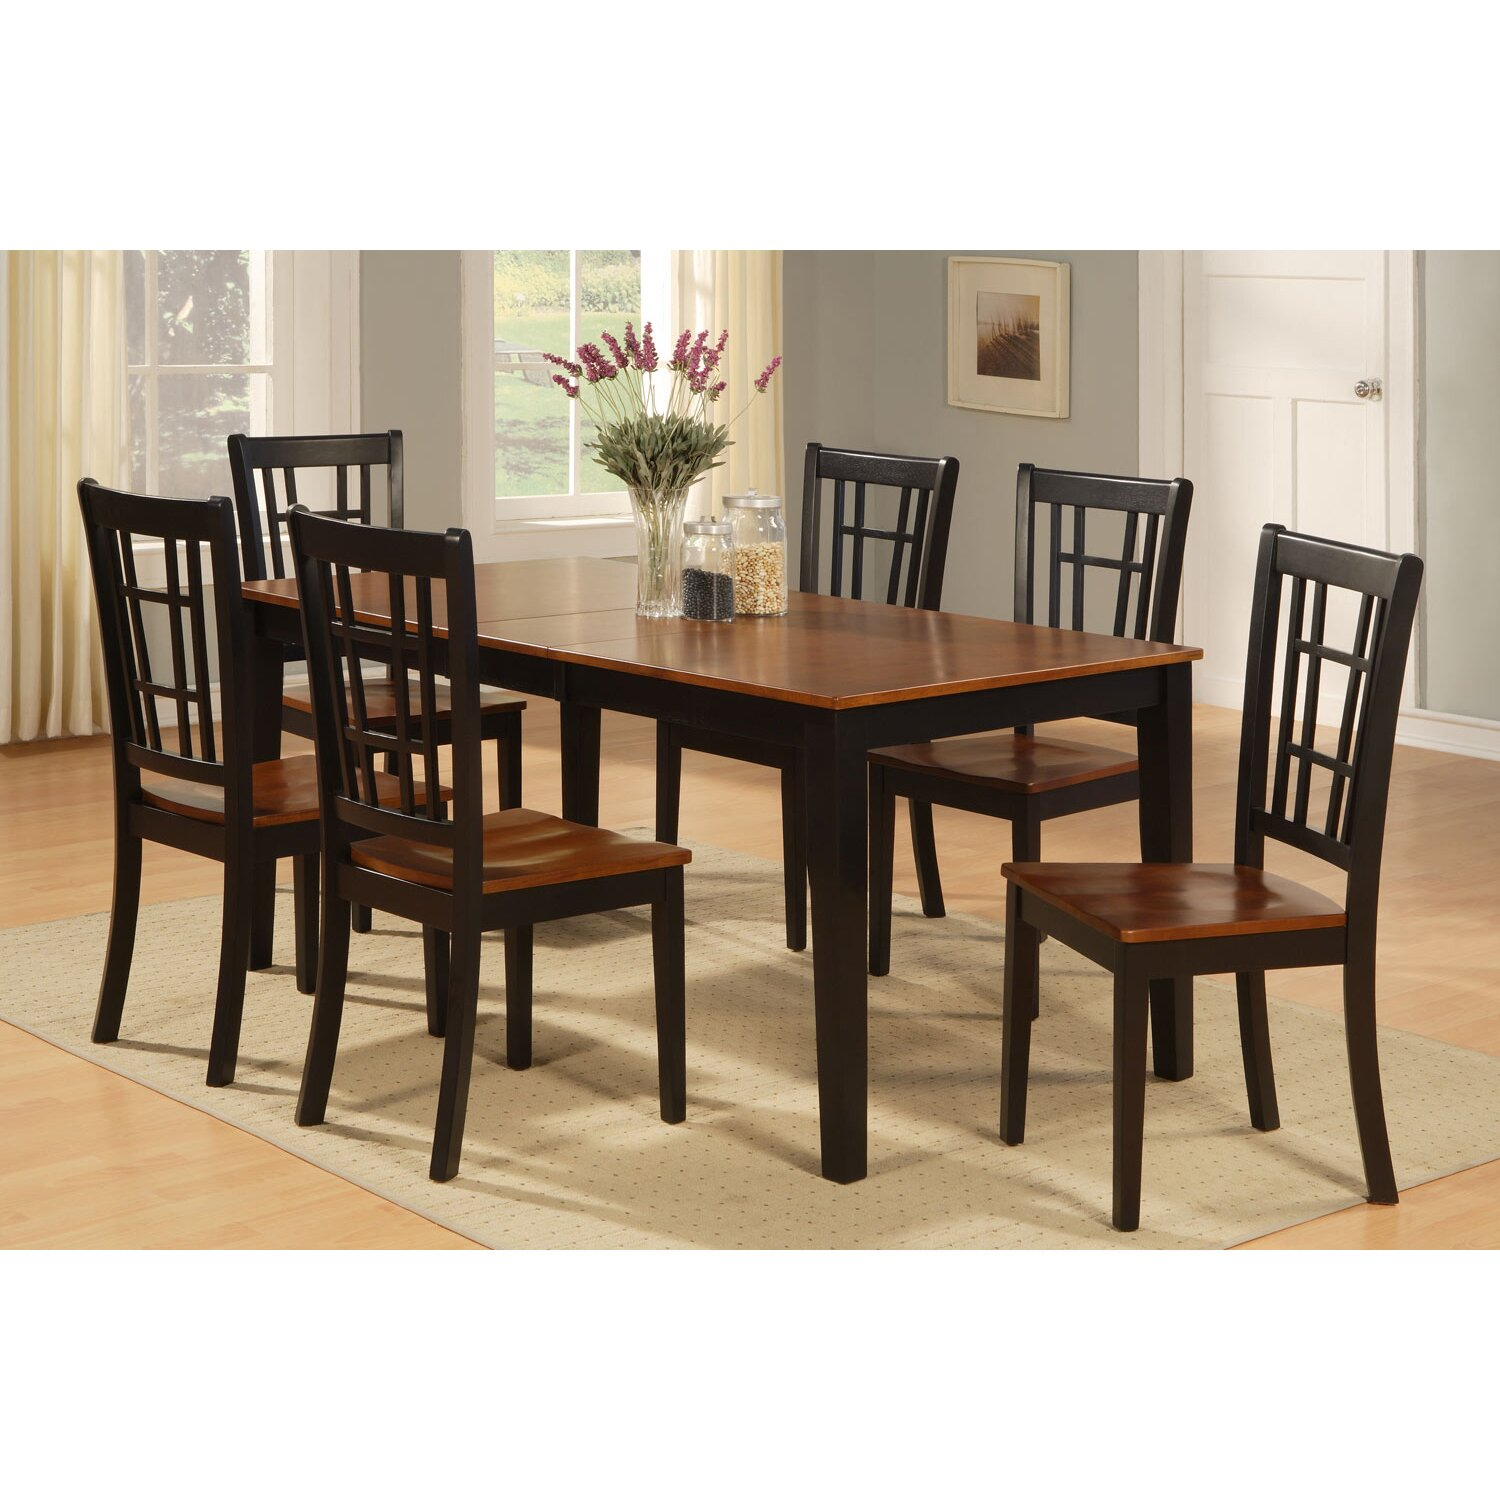 East west nicoli 7 piece dining set reviews wayfair for Furniture 7 credit reviews